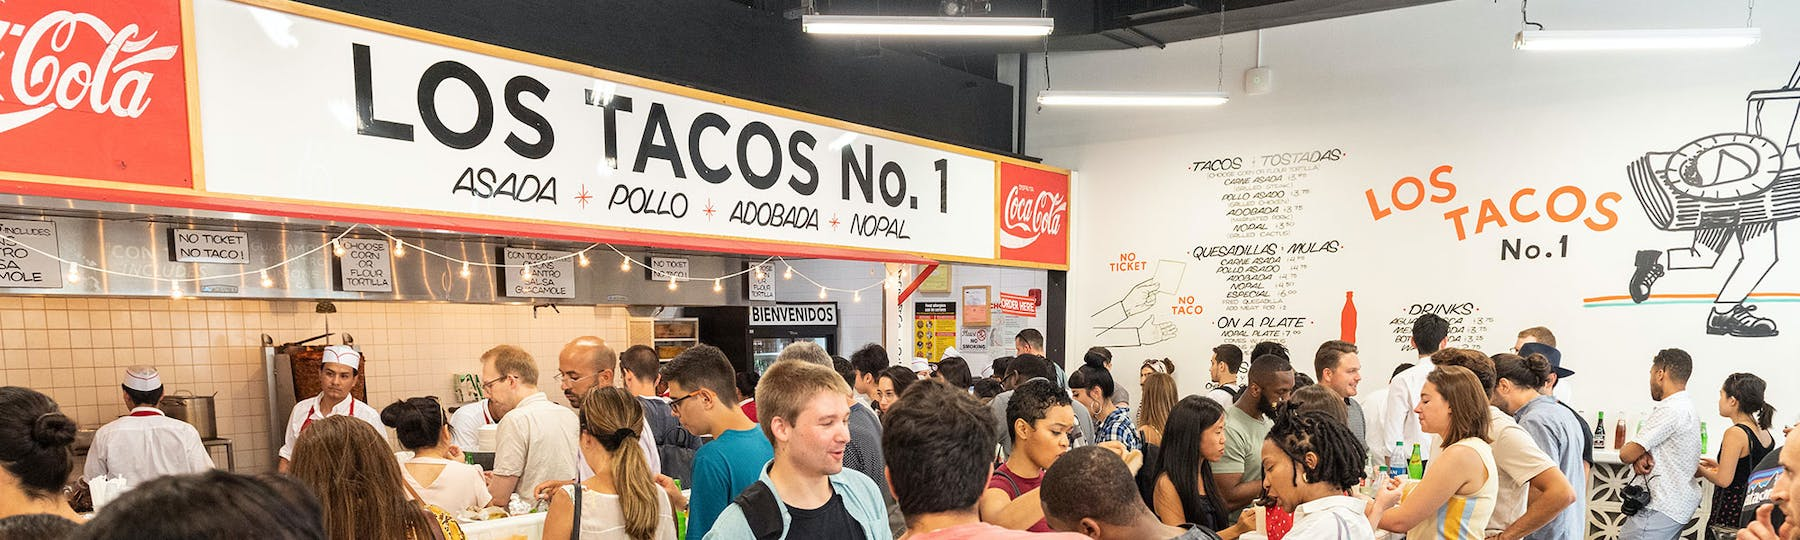 interior shot of Los Tacos No. 1